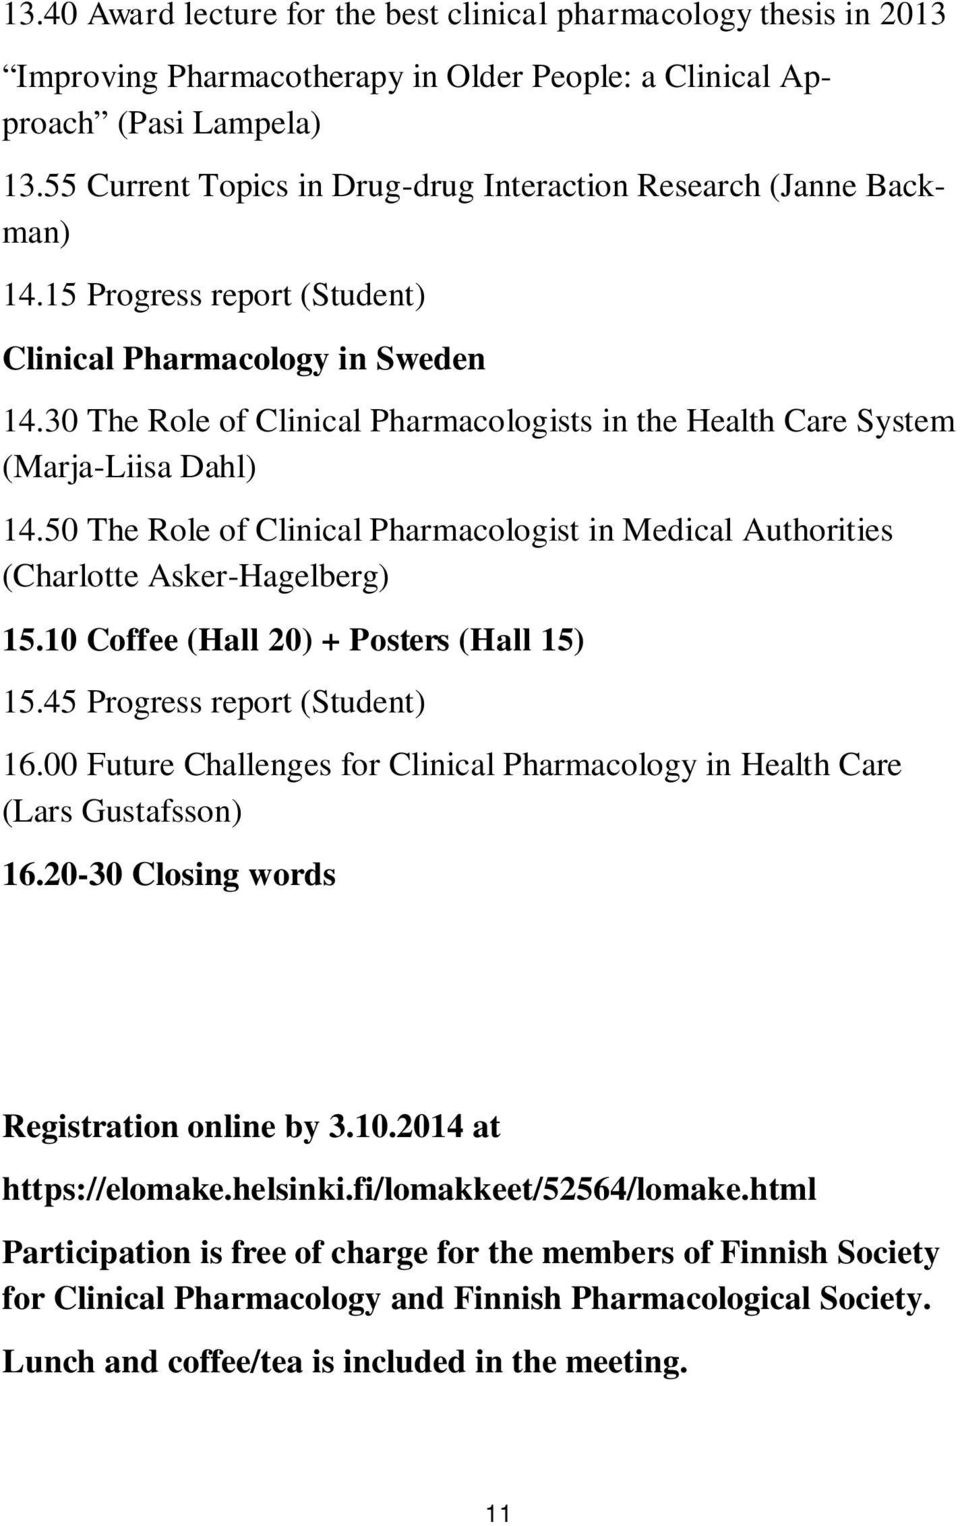 30 The Role of Clinical Pharmacologists in the Health Care System (Marja-Liisa Dahl) 14.50 The Role of Clinical Pharmacologist in Medical Authorities (Charlotte Asker-Hagelberg) 15.